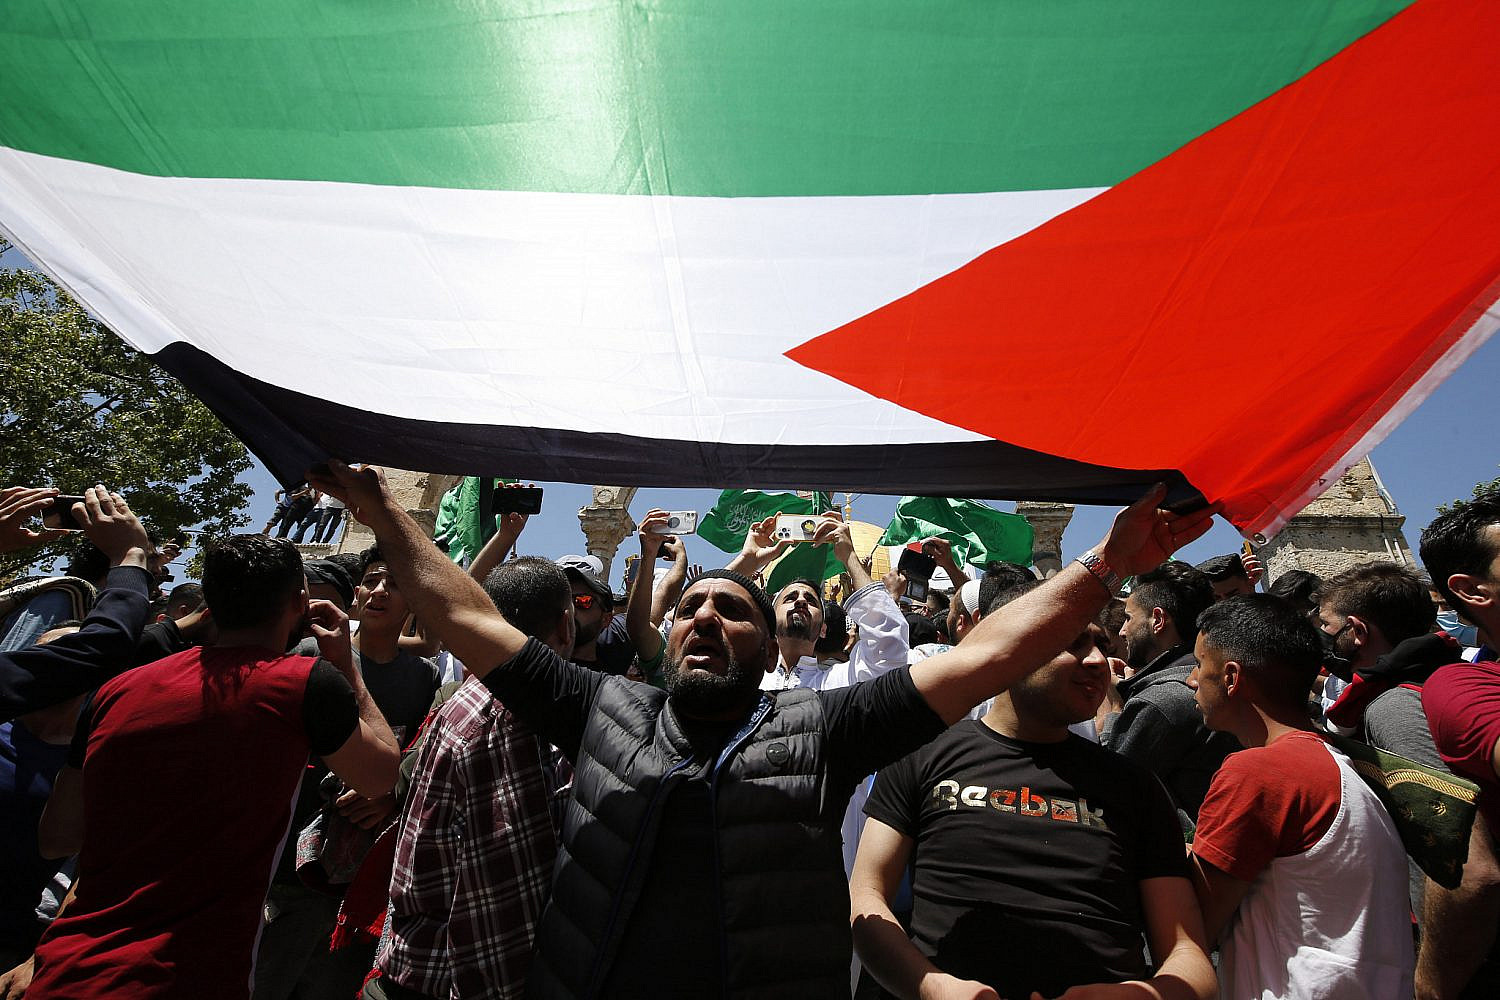 Palestinians hold Hamas flags after performing the last Friday prayer of Ramadan to protest over the possible eviction of Palestinian families from homes in the East Jerusalem neighborhood of Sheikh Jarrah, May 7, 2021. (Jamal Awad/Flash90)